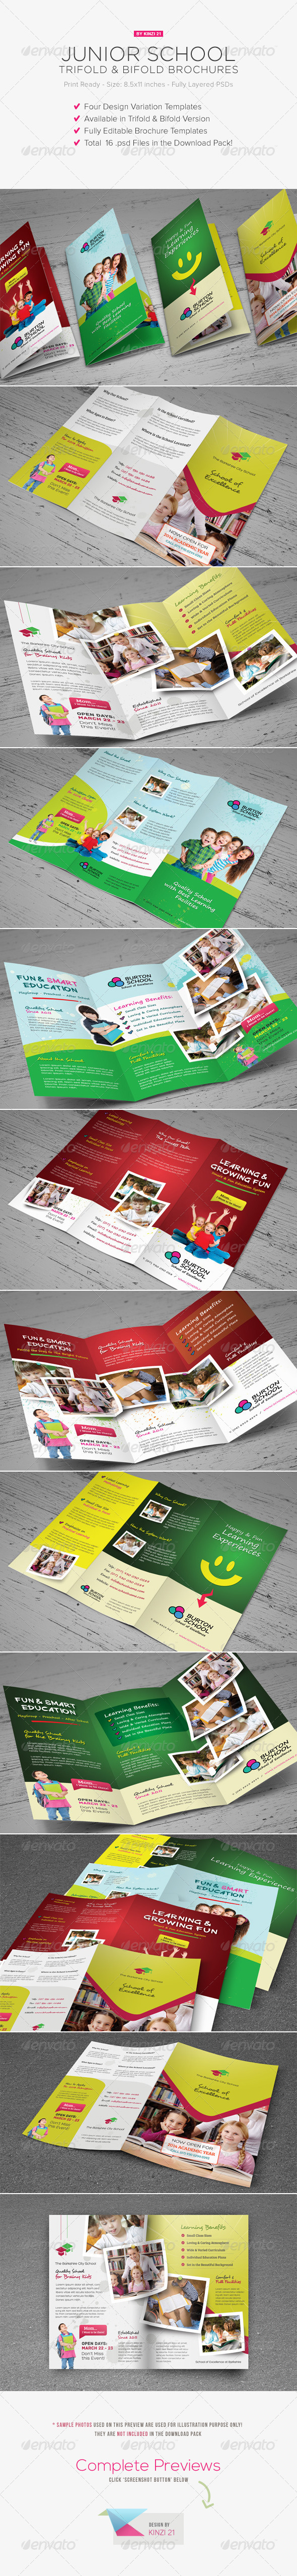 Junior School Trifold & Bifold Brochures - Corporate Brochures